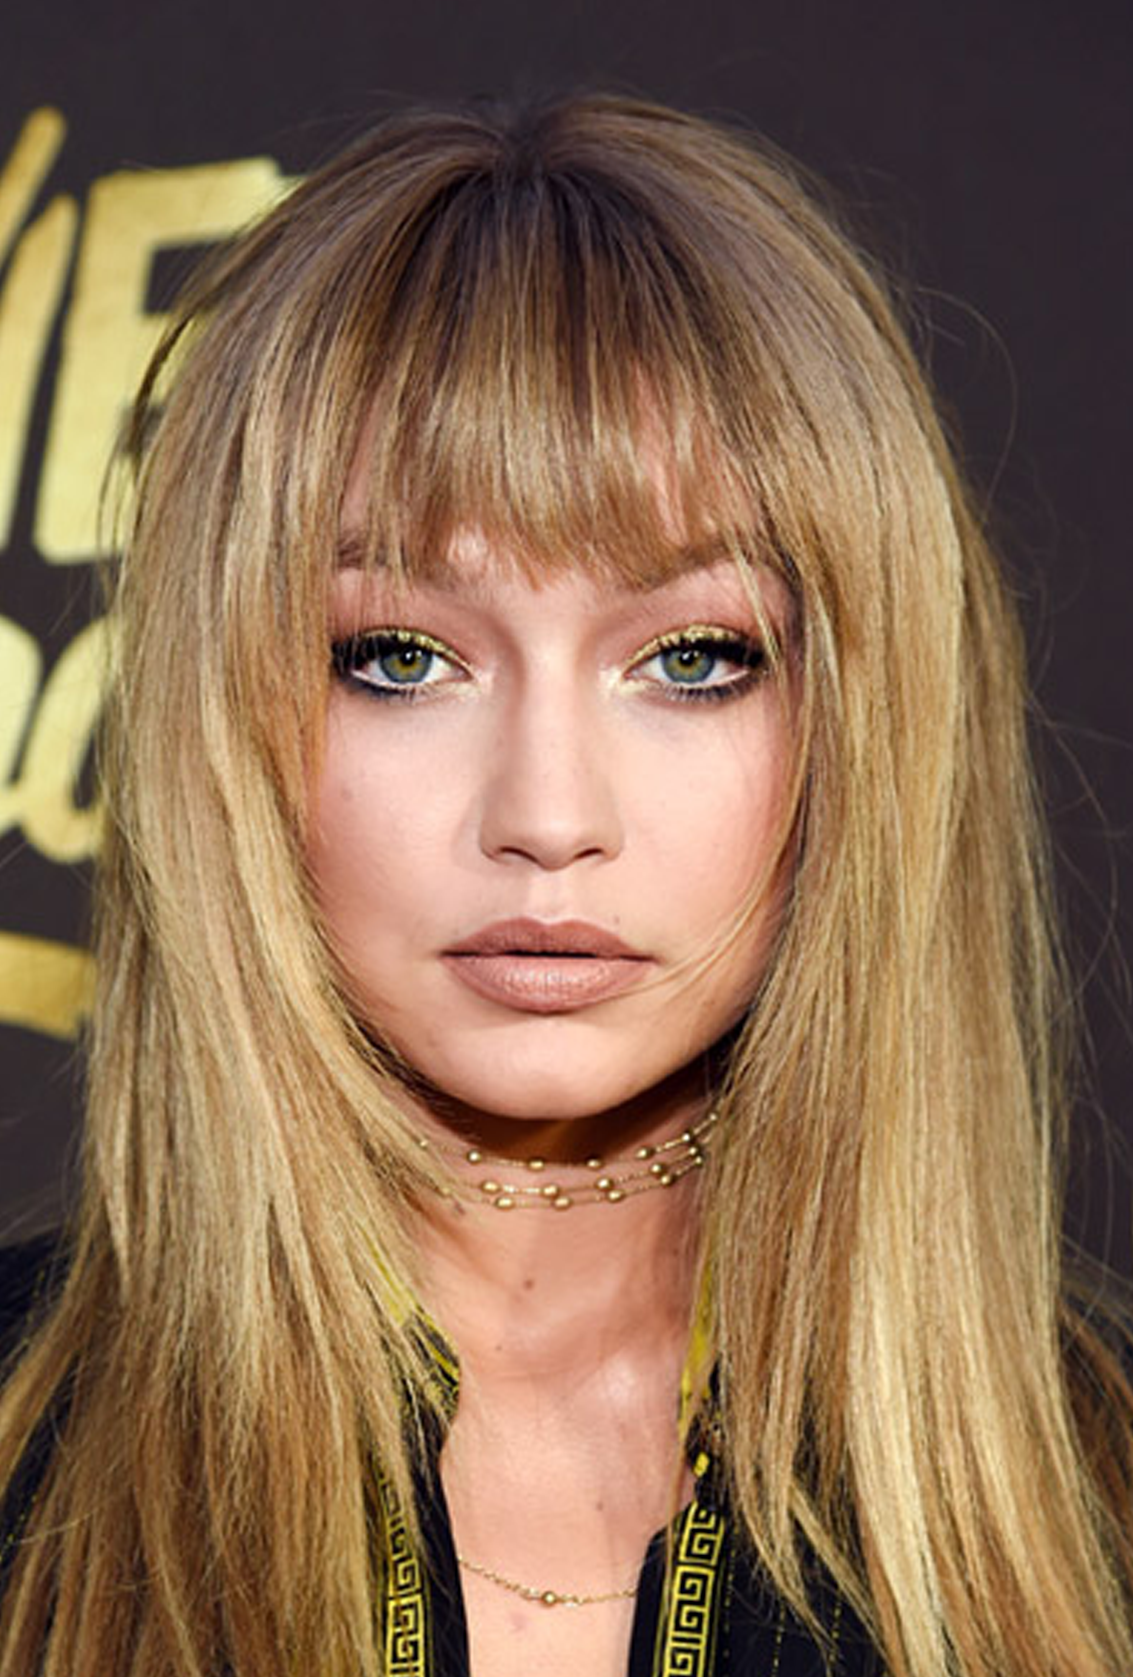 7 Makes Poderosas de Gigi Hadid 2